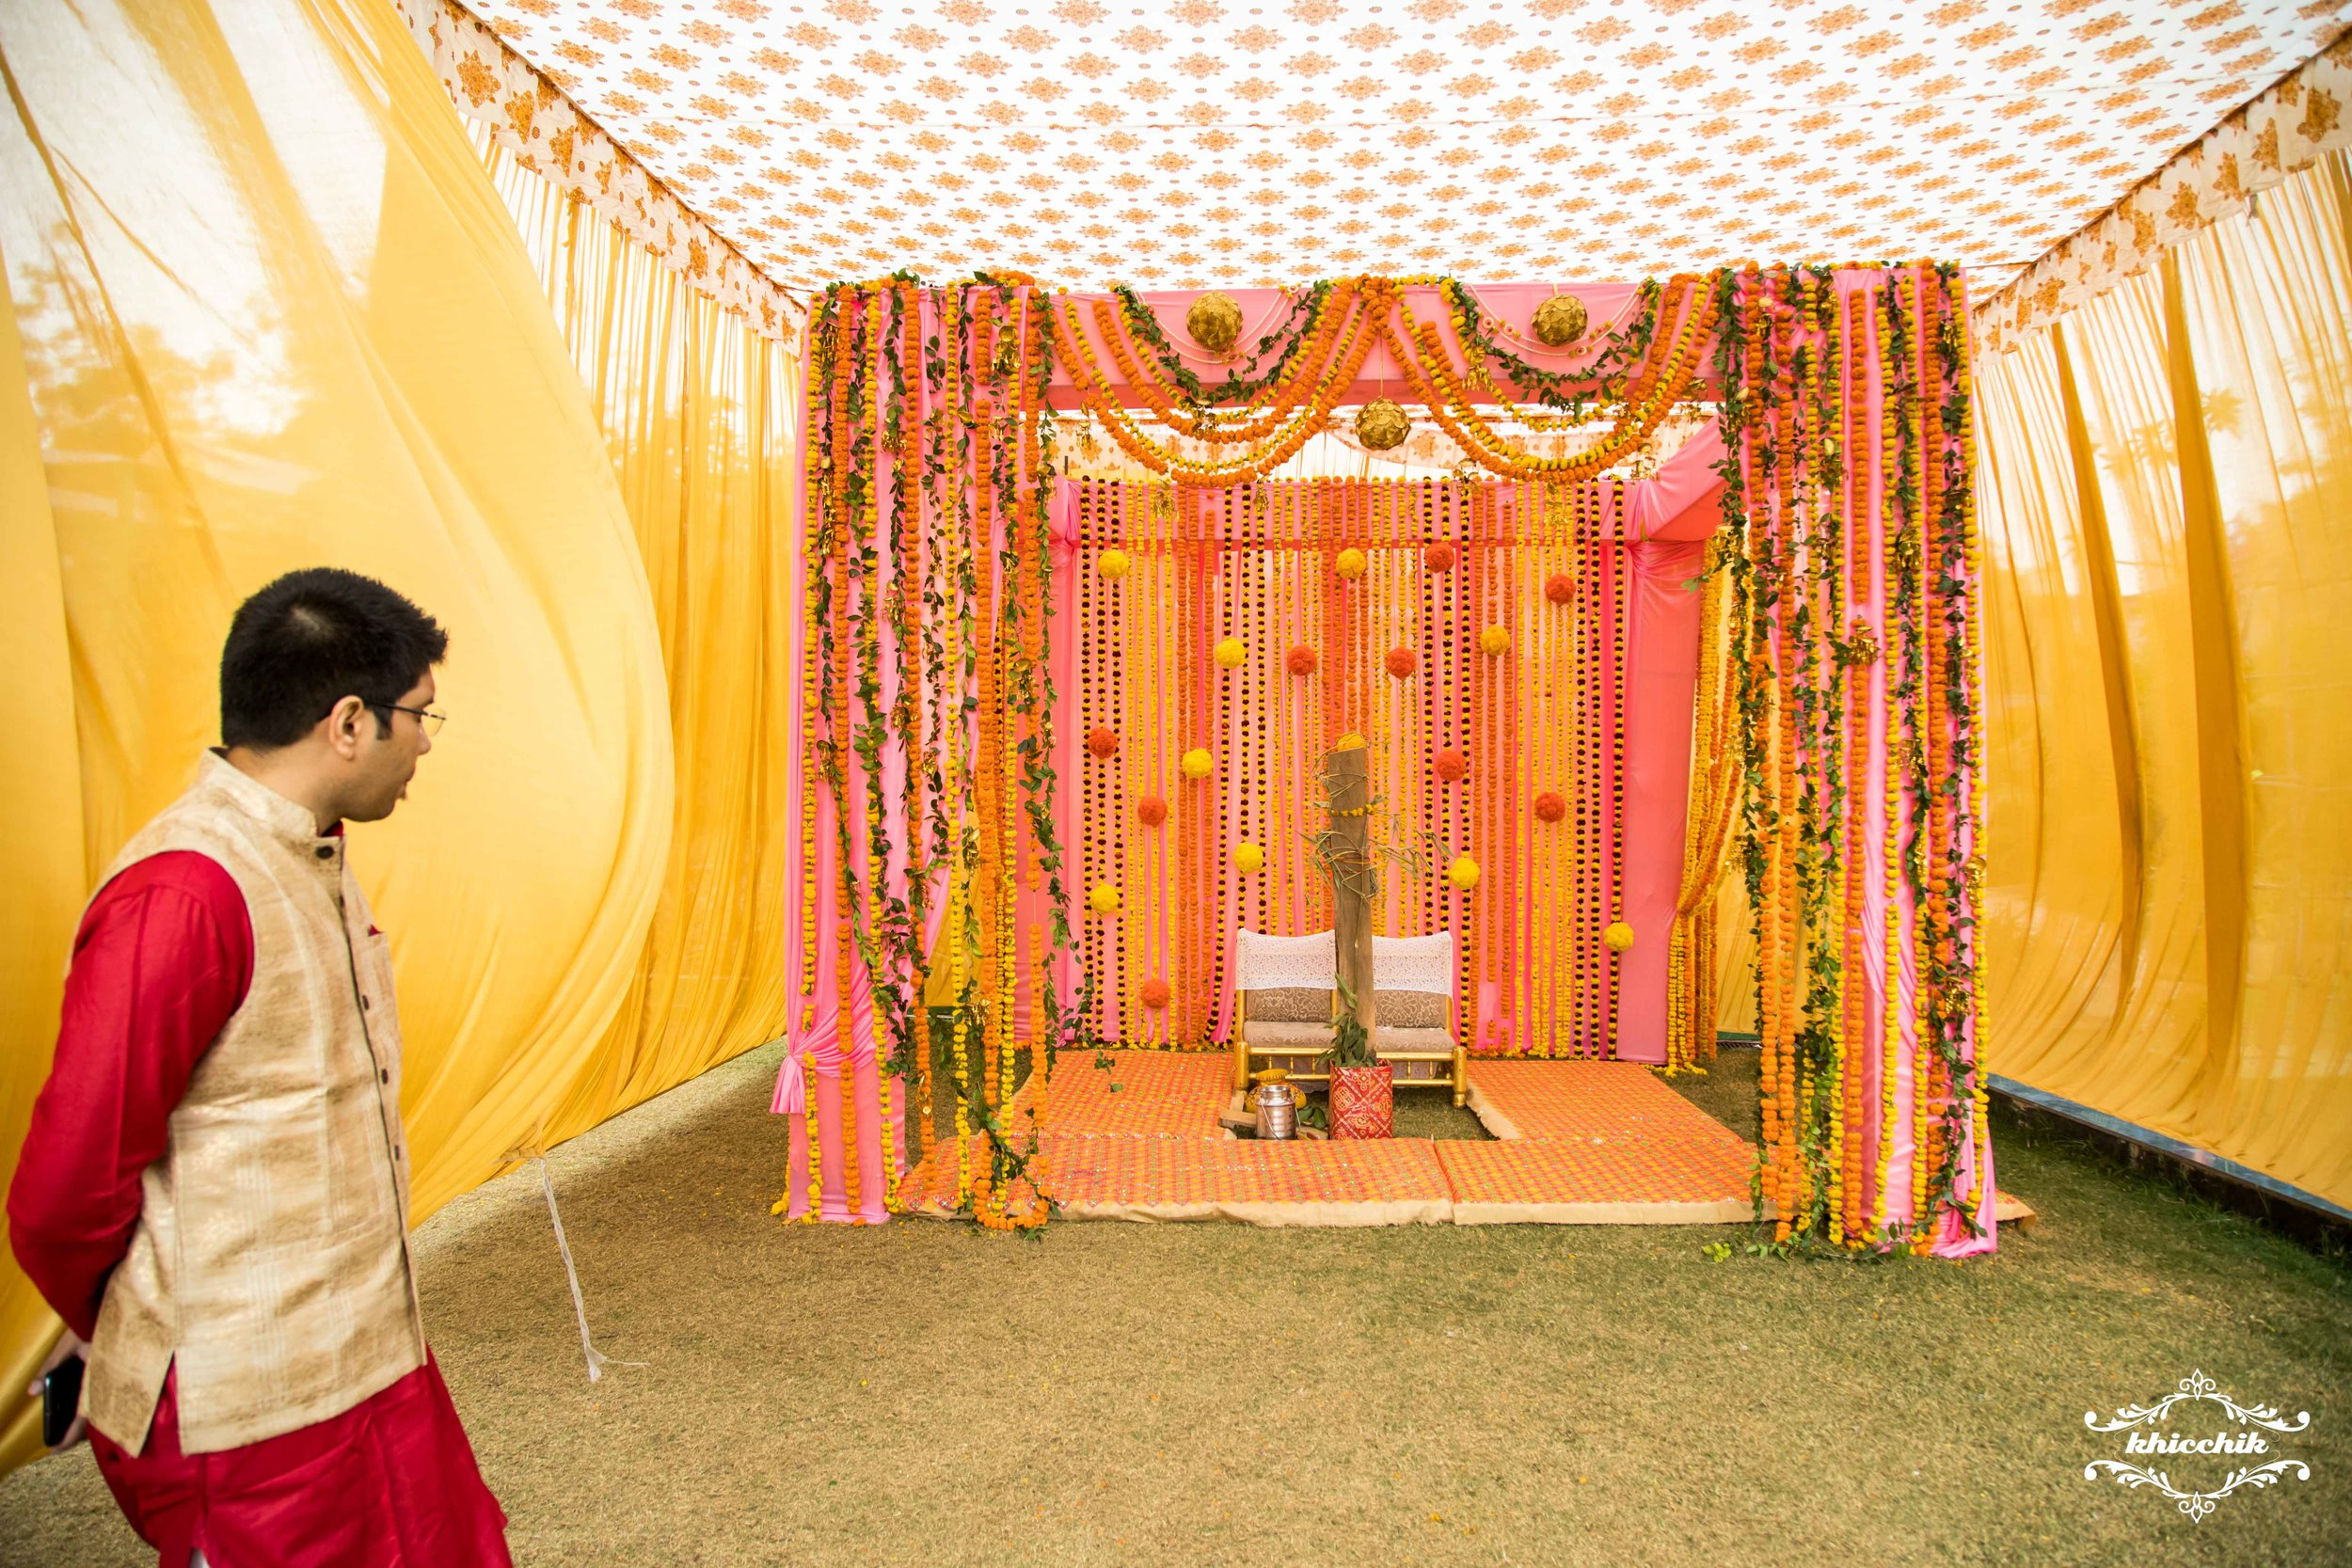 The mandap being looked after by Roli's brother-in- law as he was one of the first ones to arrive and oversee the decorations.